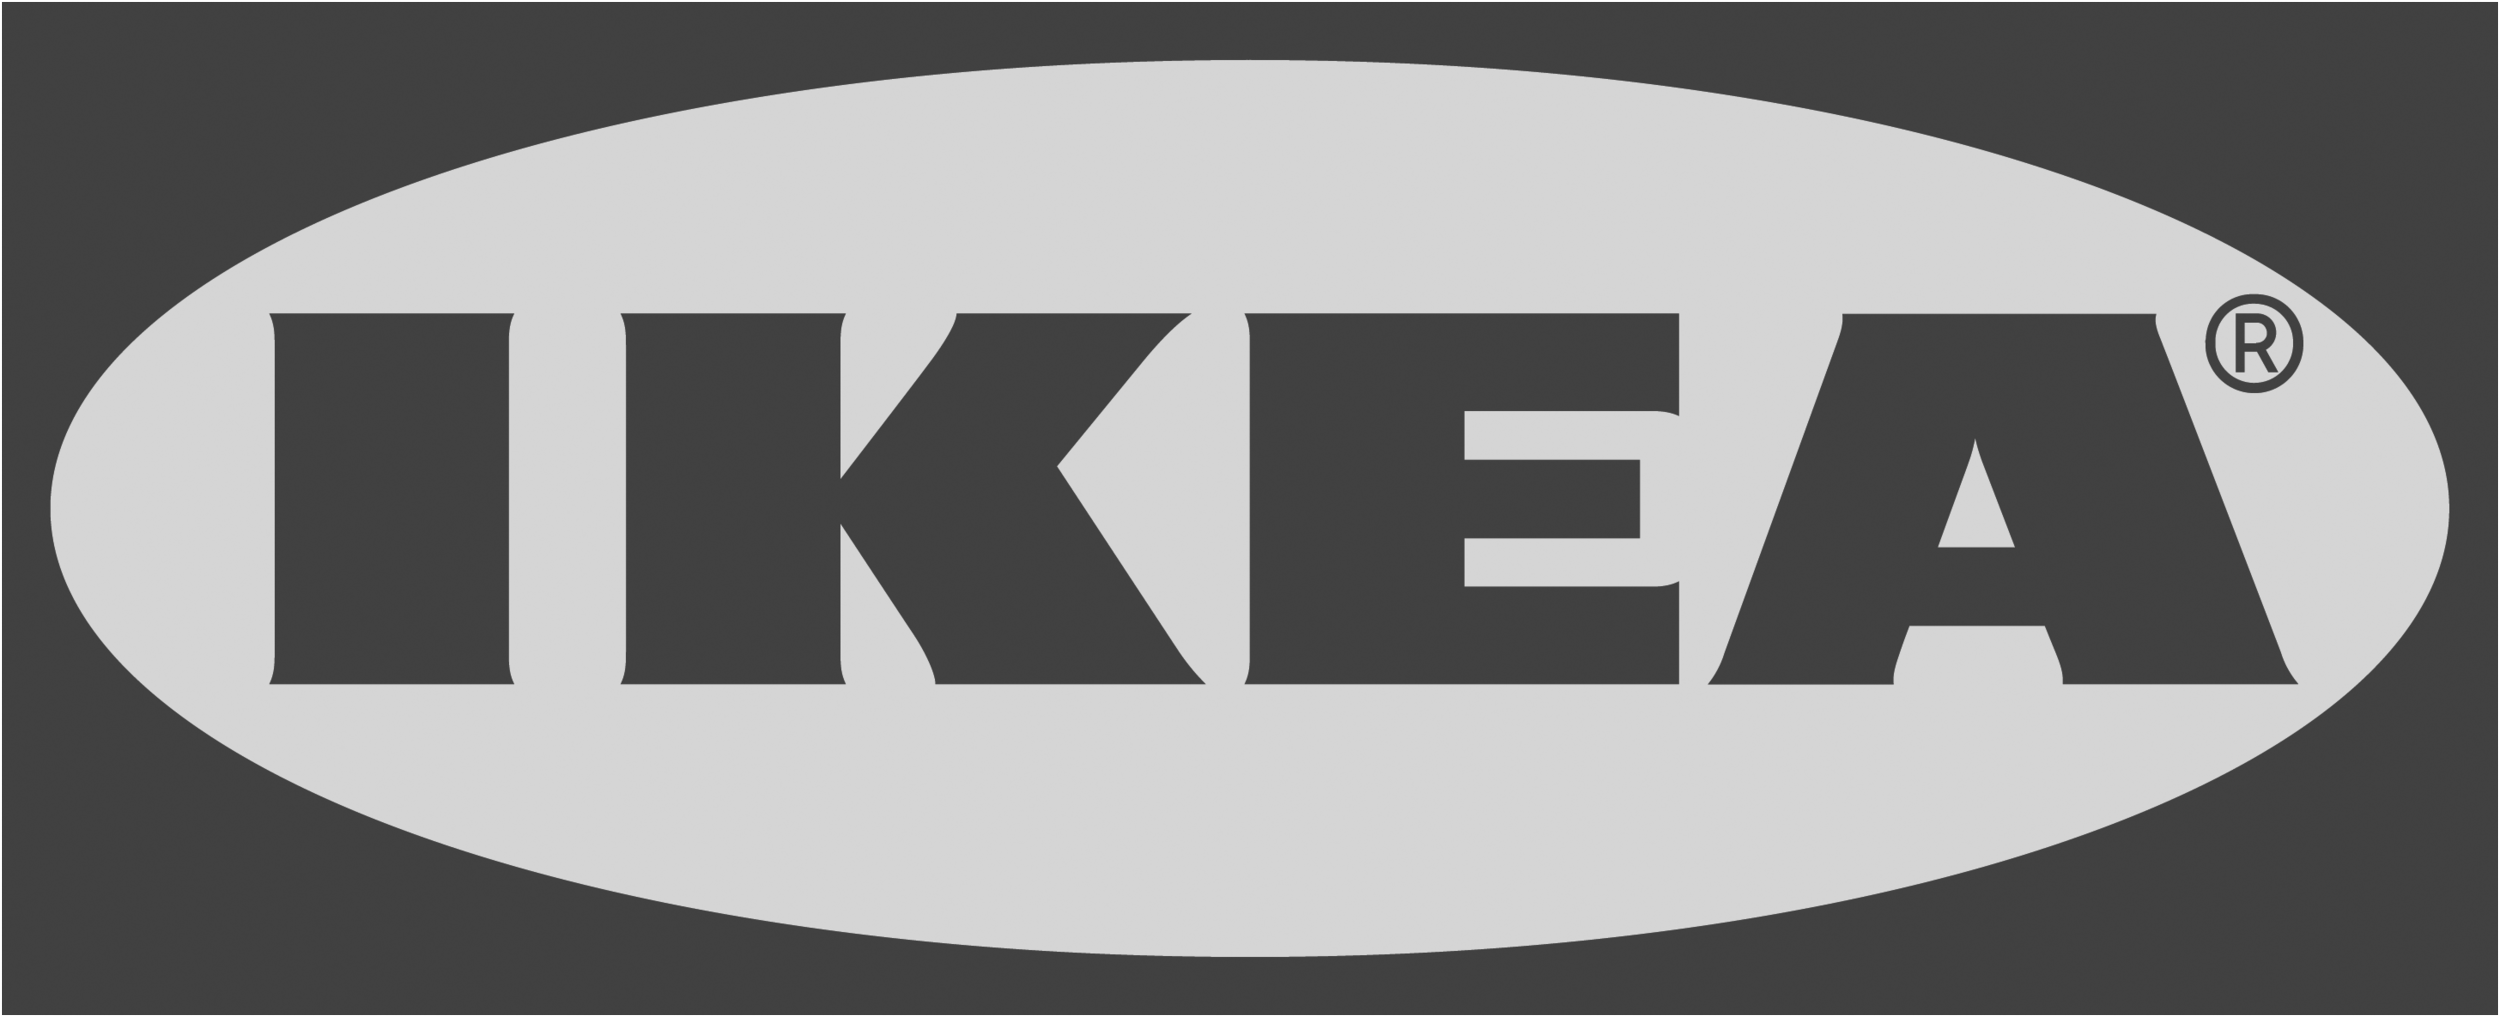 Ikea_logo_grayscale.png